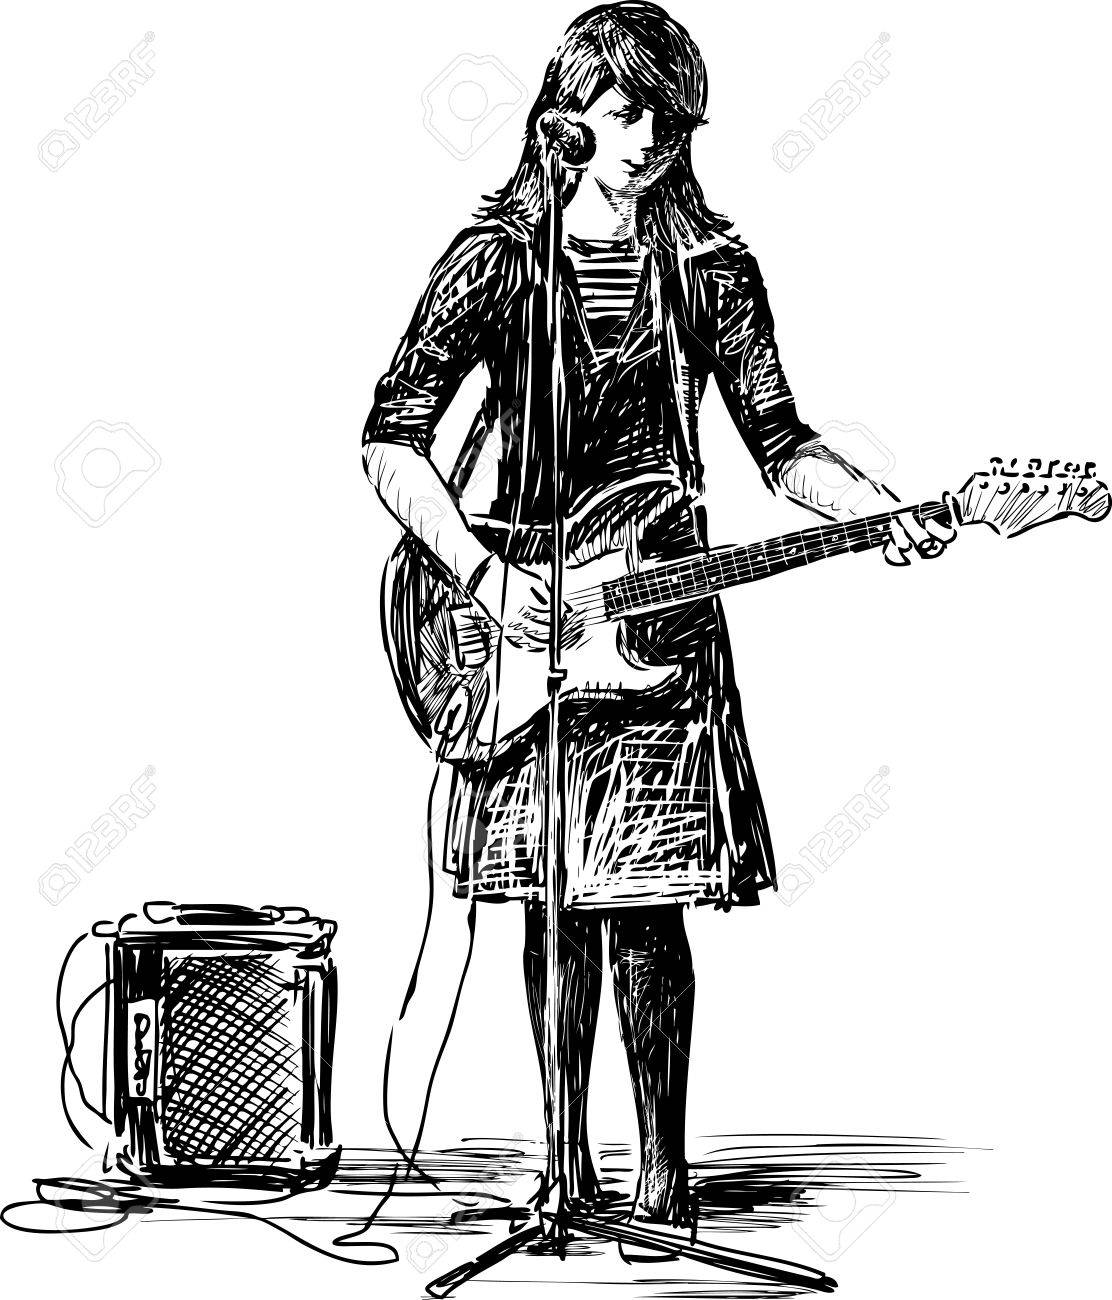 Sketch of a girl with a guitar stock vector 81166657